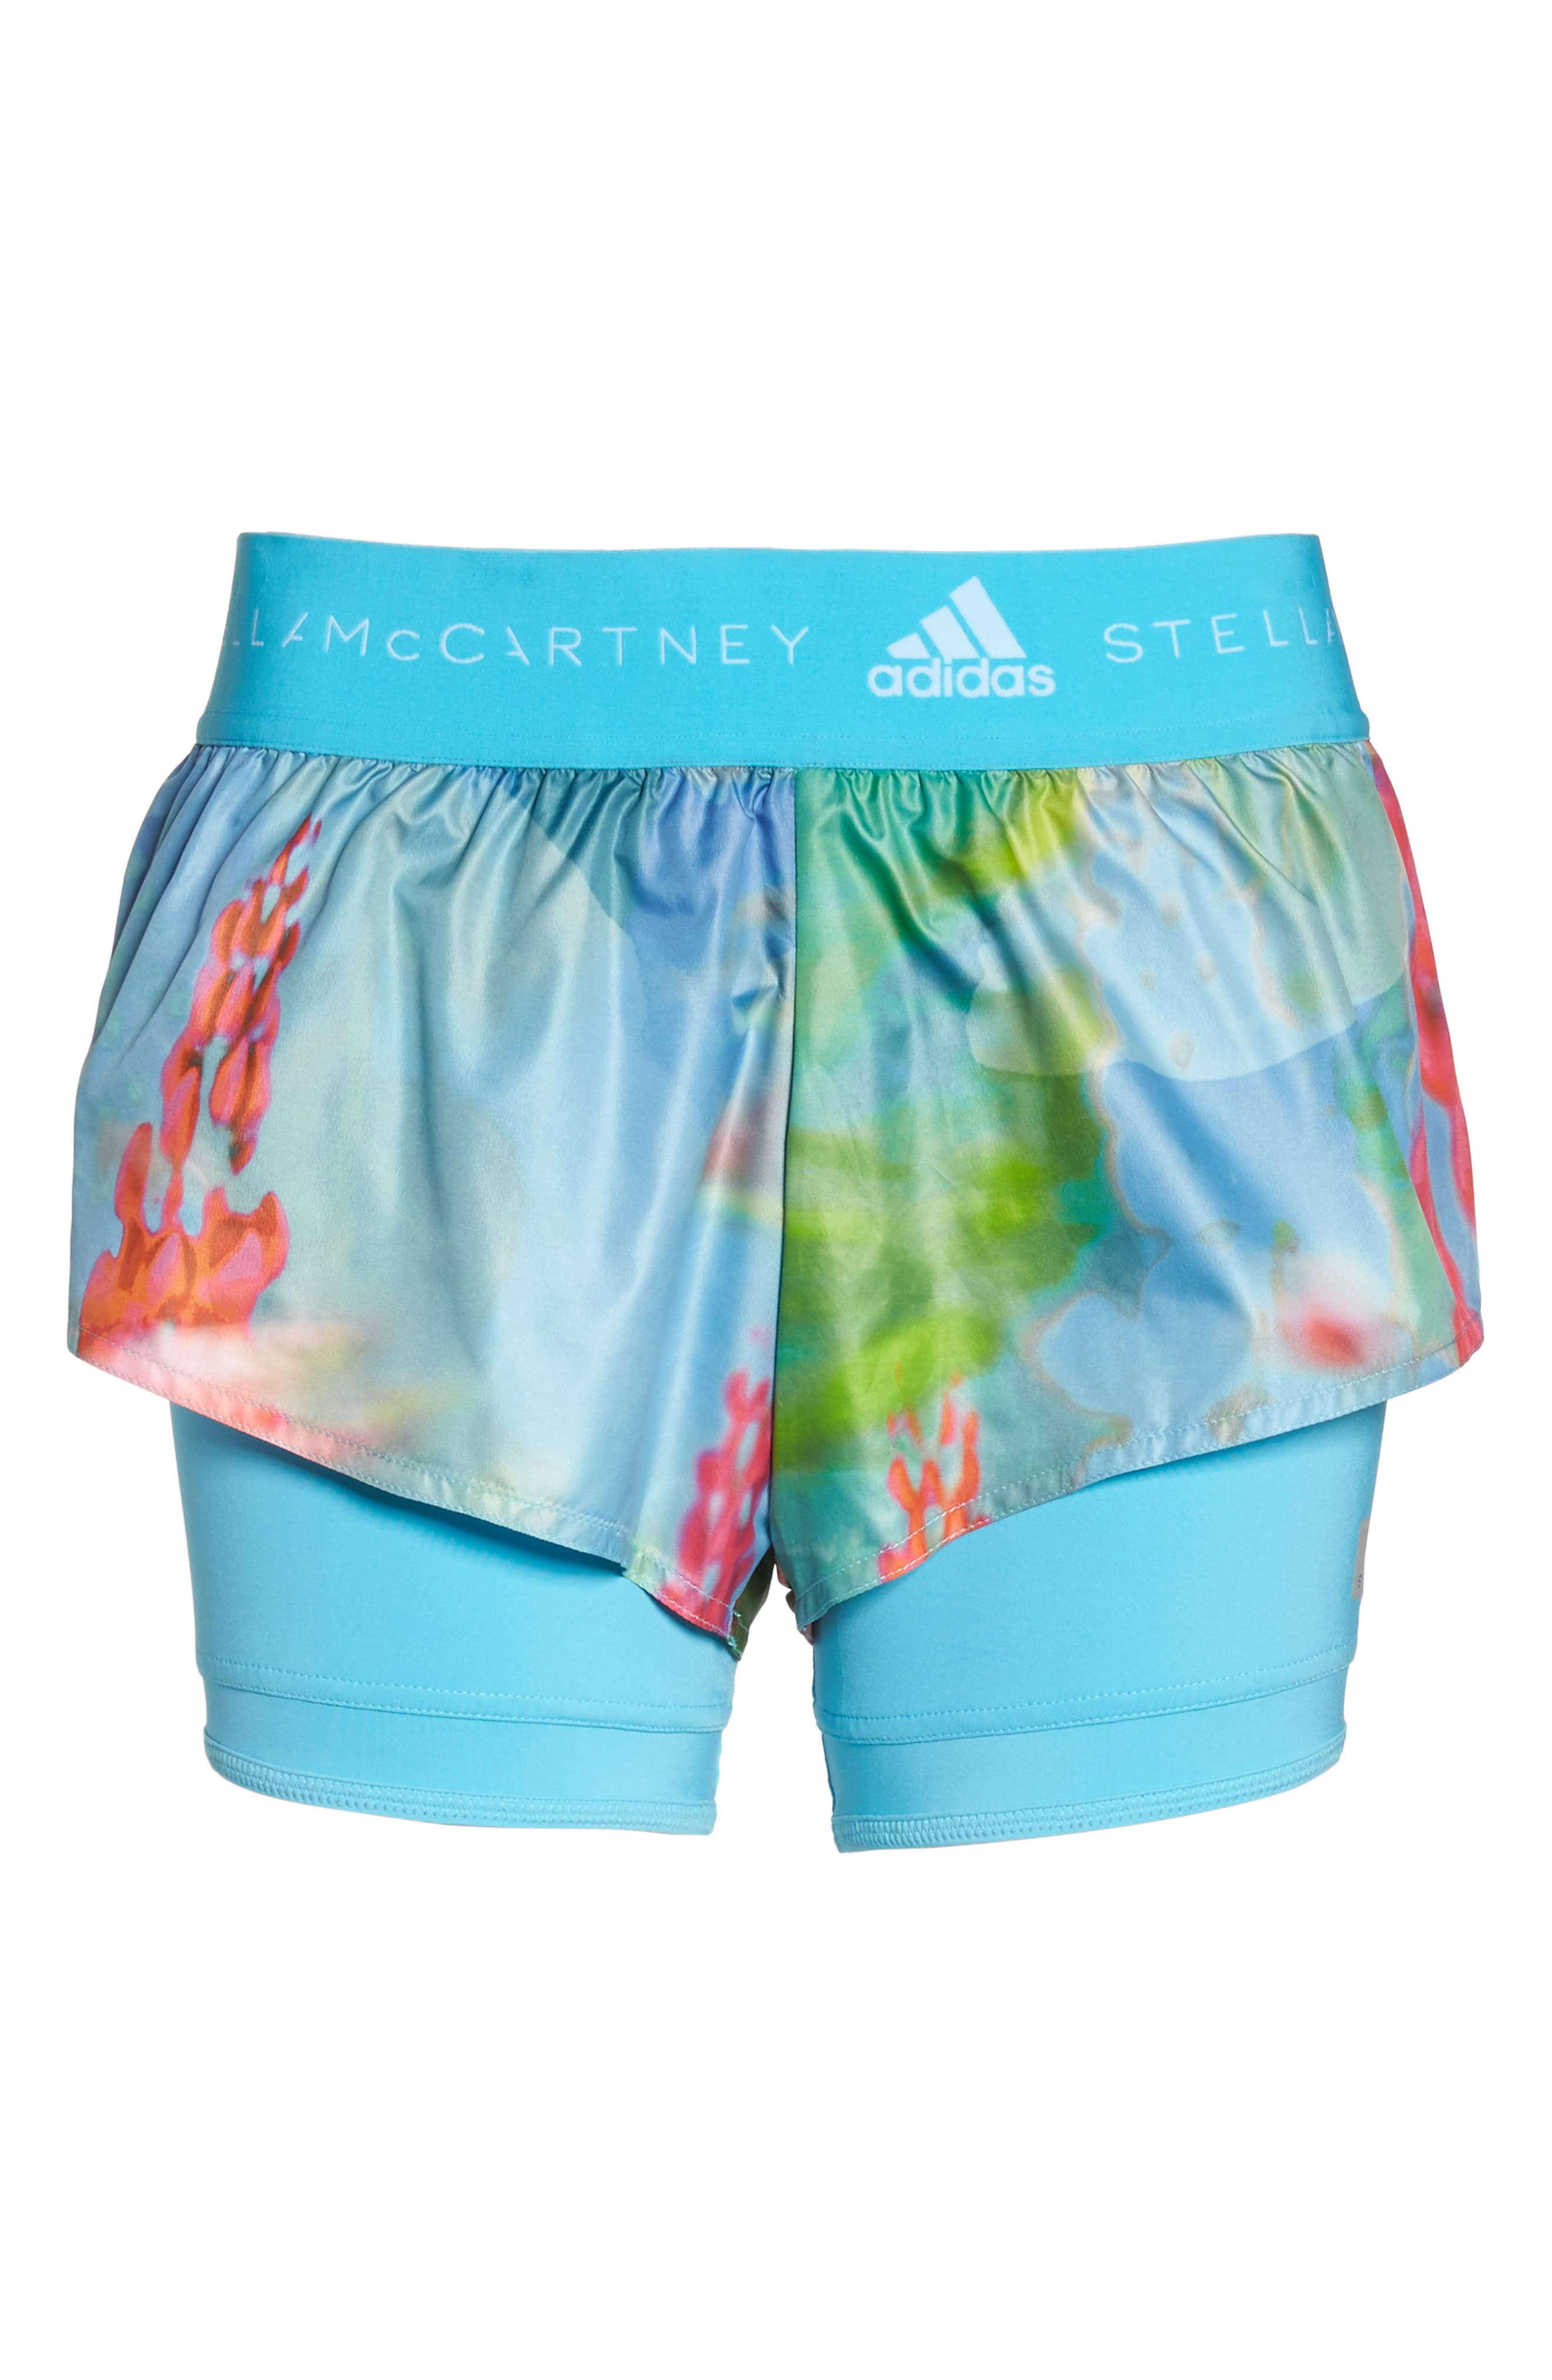 2-in-1 Run Shorts,                             Alternate thumbnail 7, color,